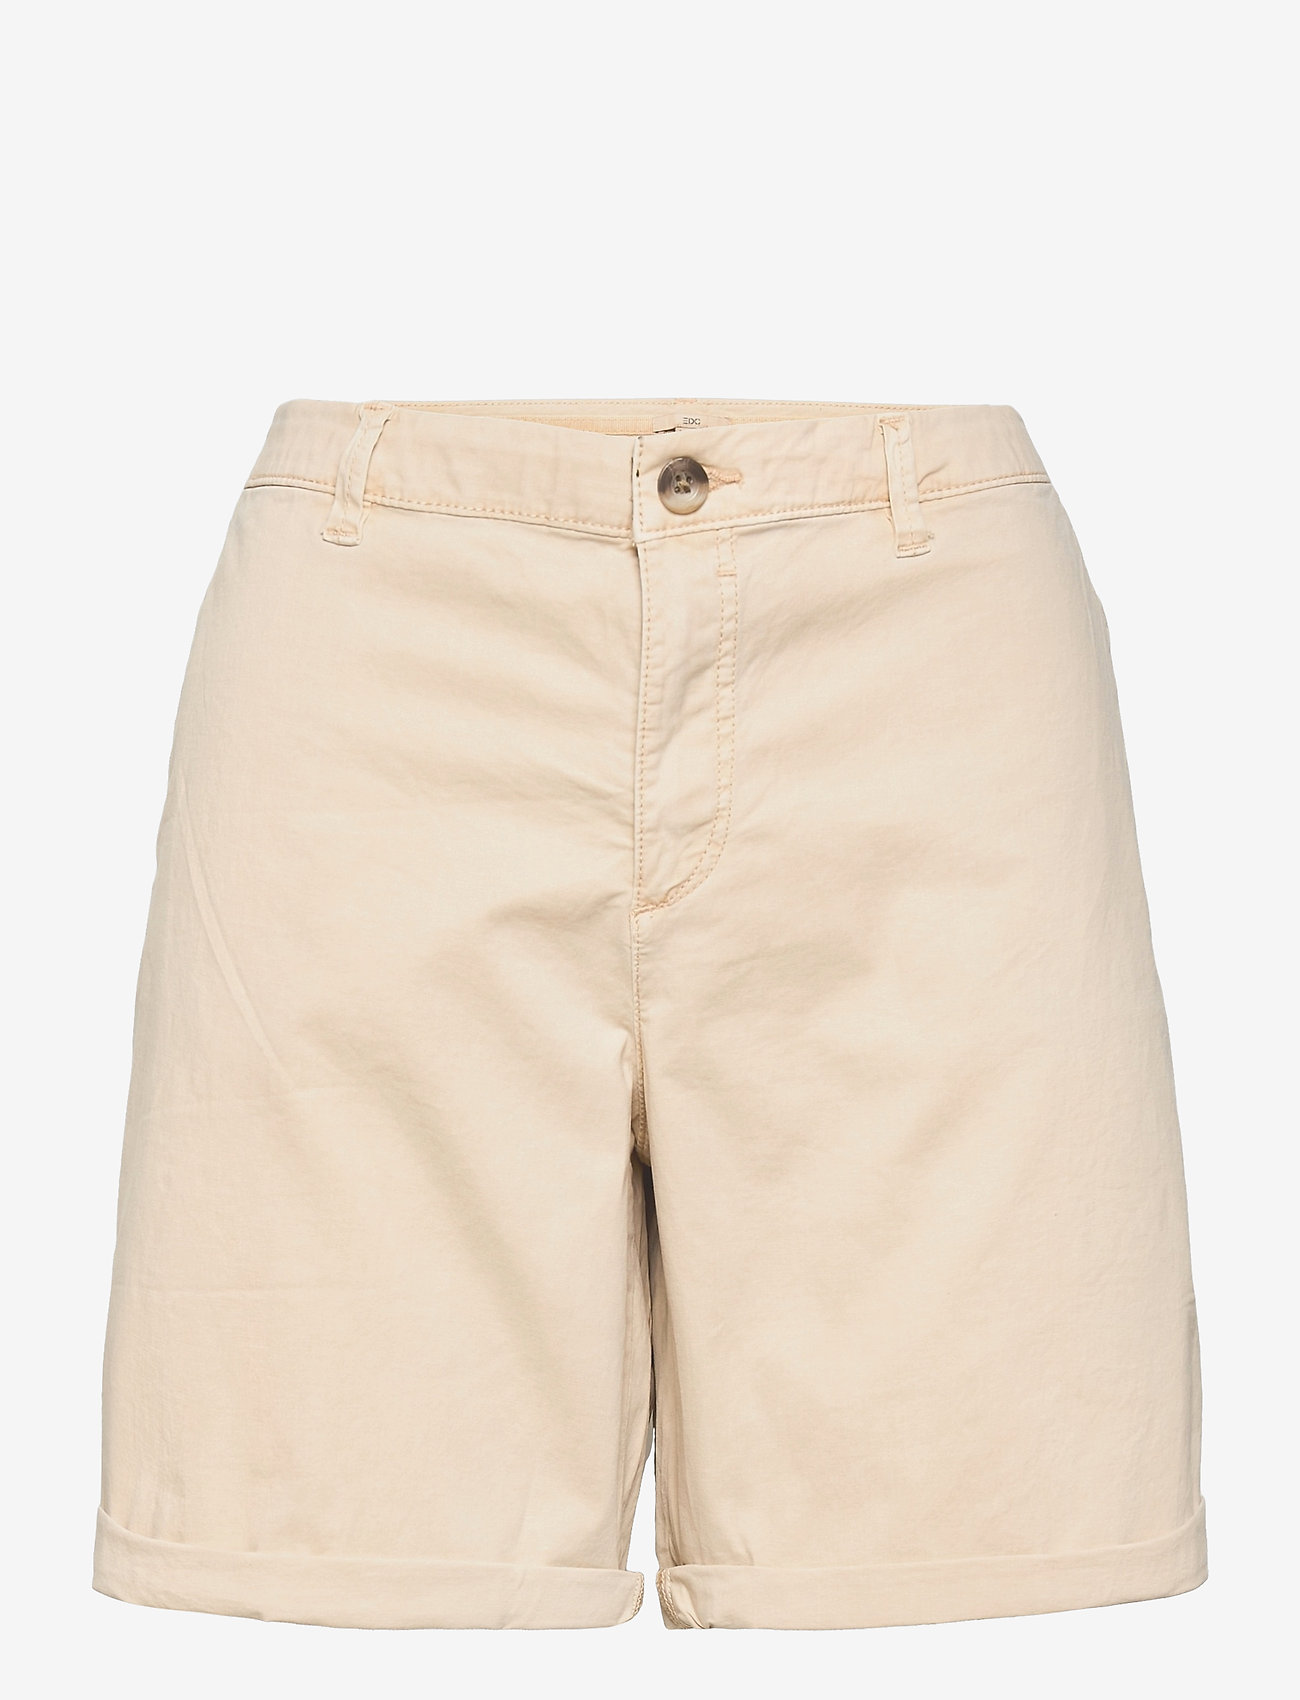 EDC by Esprit - Shorts woven - chino shorts - beige - 0